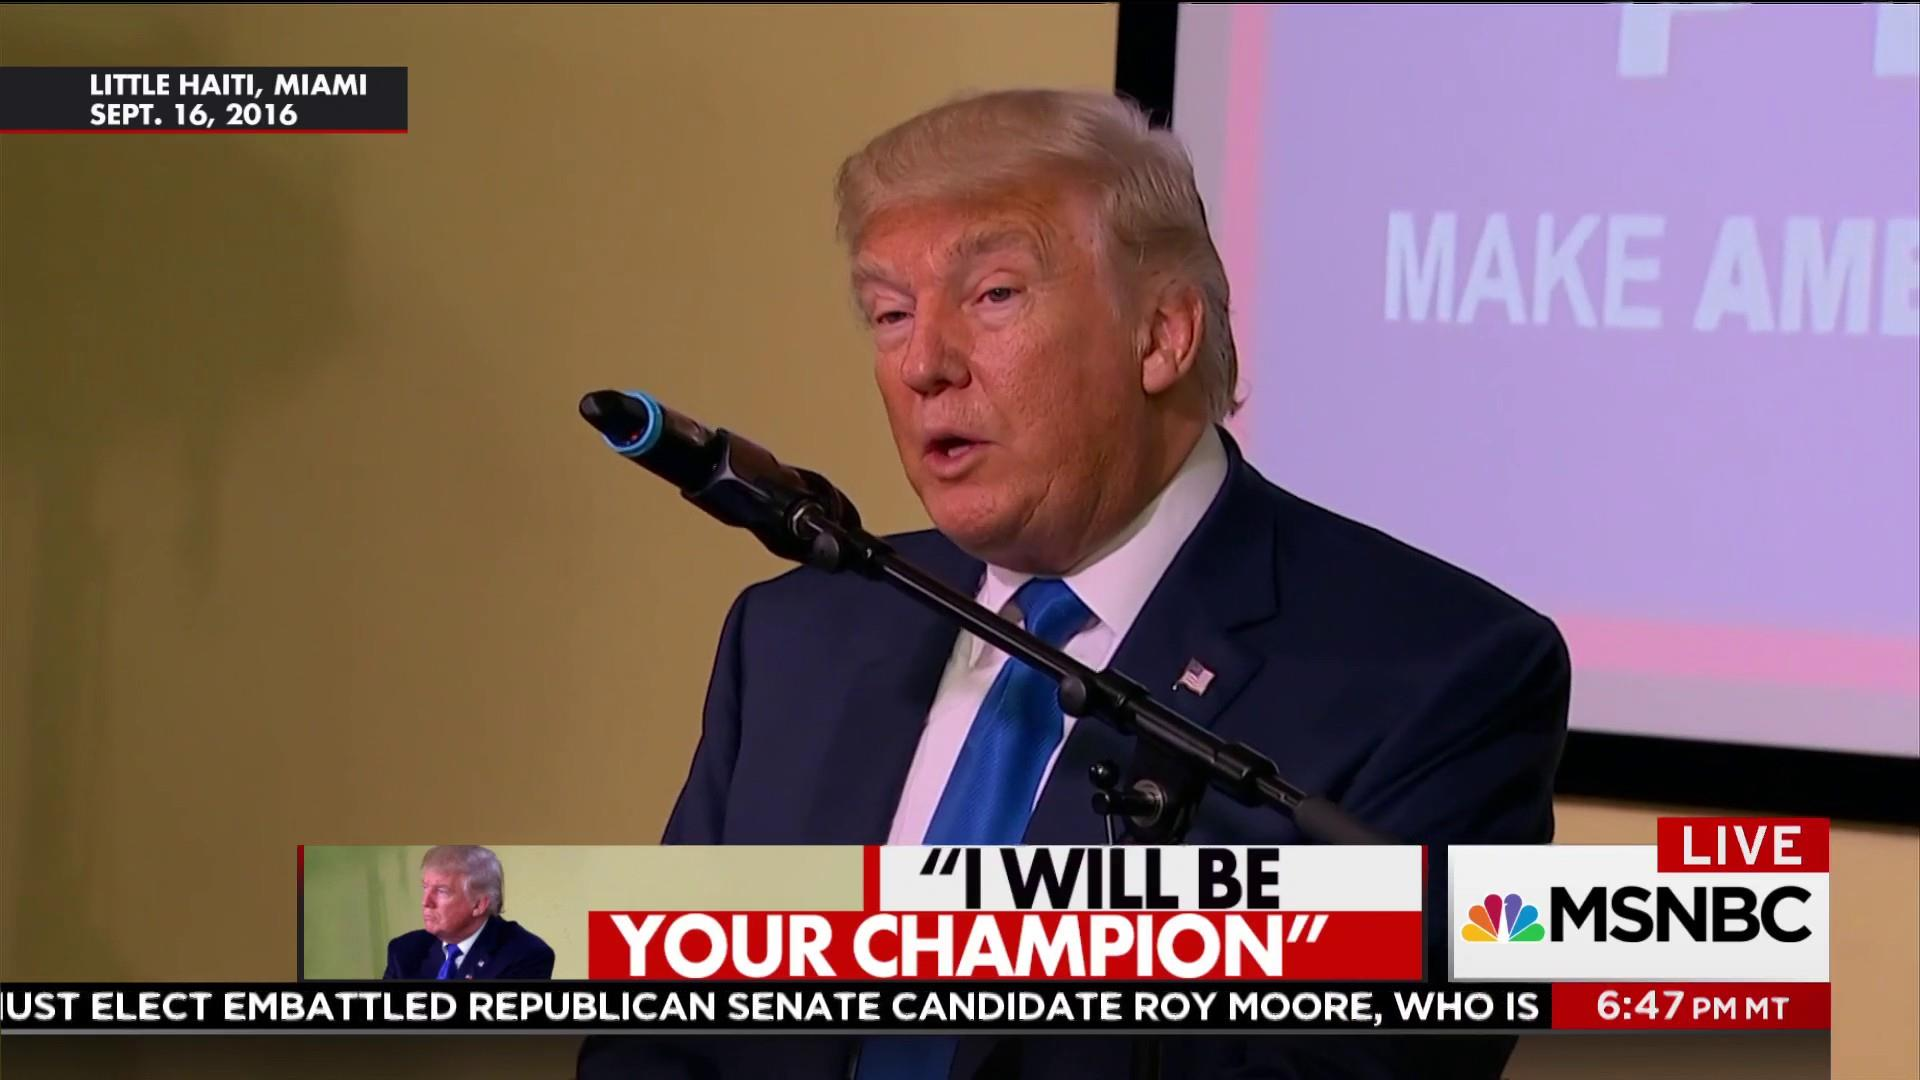 Trump hurts Haitians he promised to help